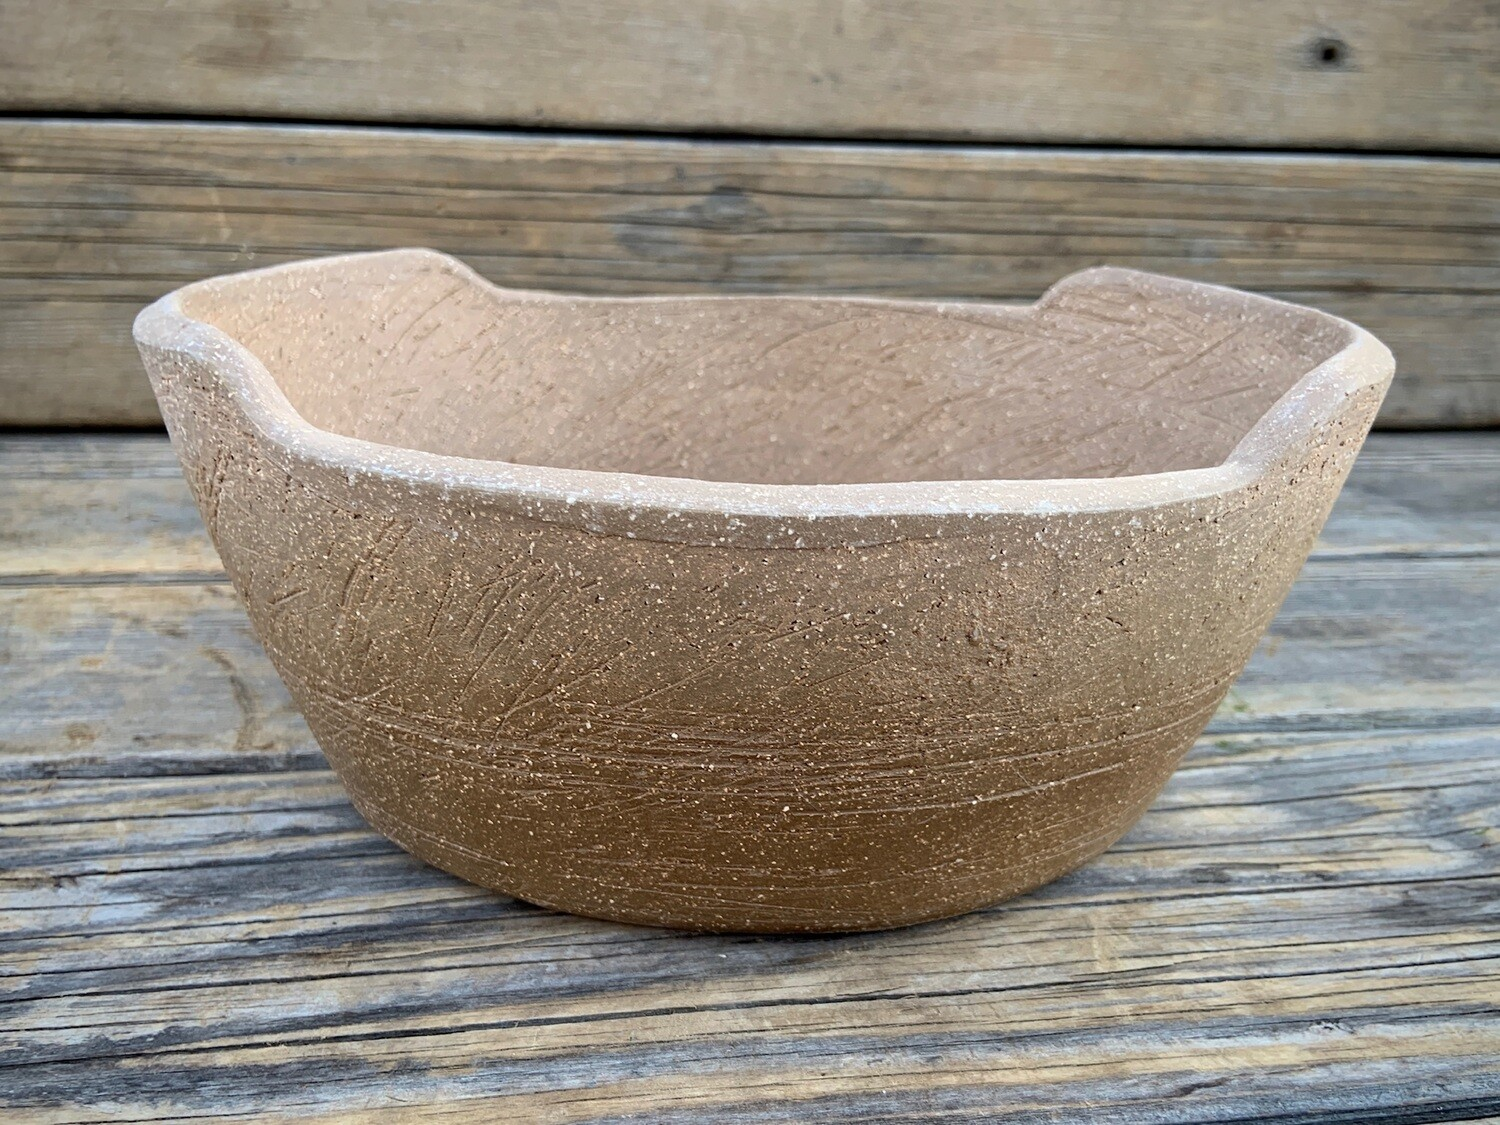 Greenhouse Pot | Rustic Clay Low Bowl Planter | 4